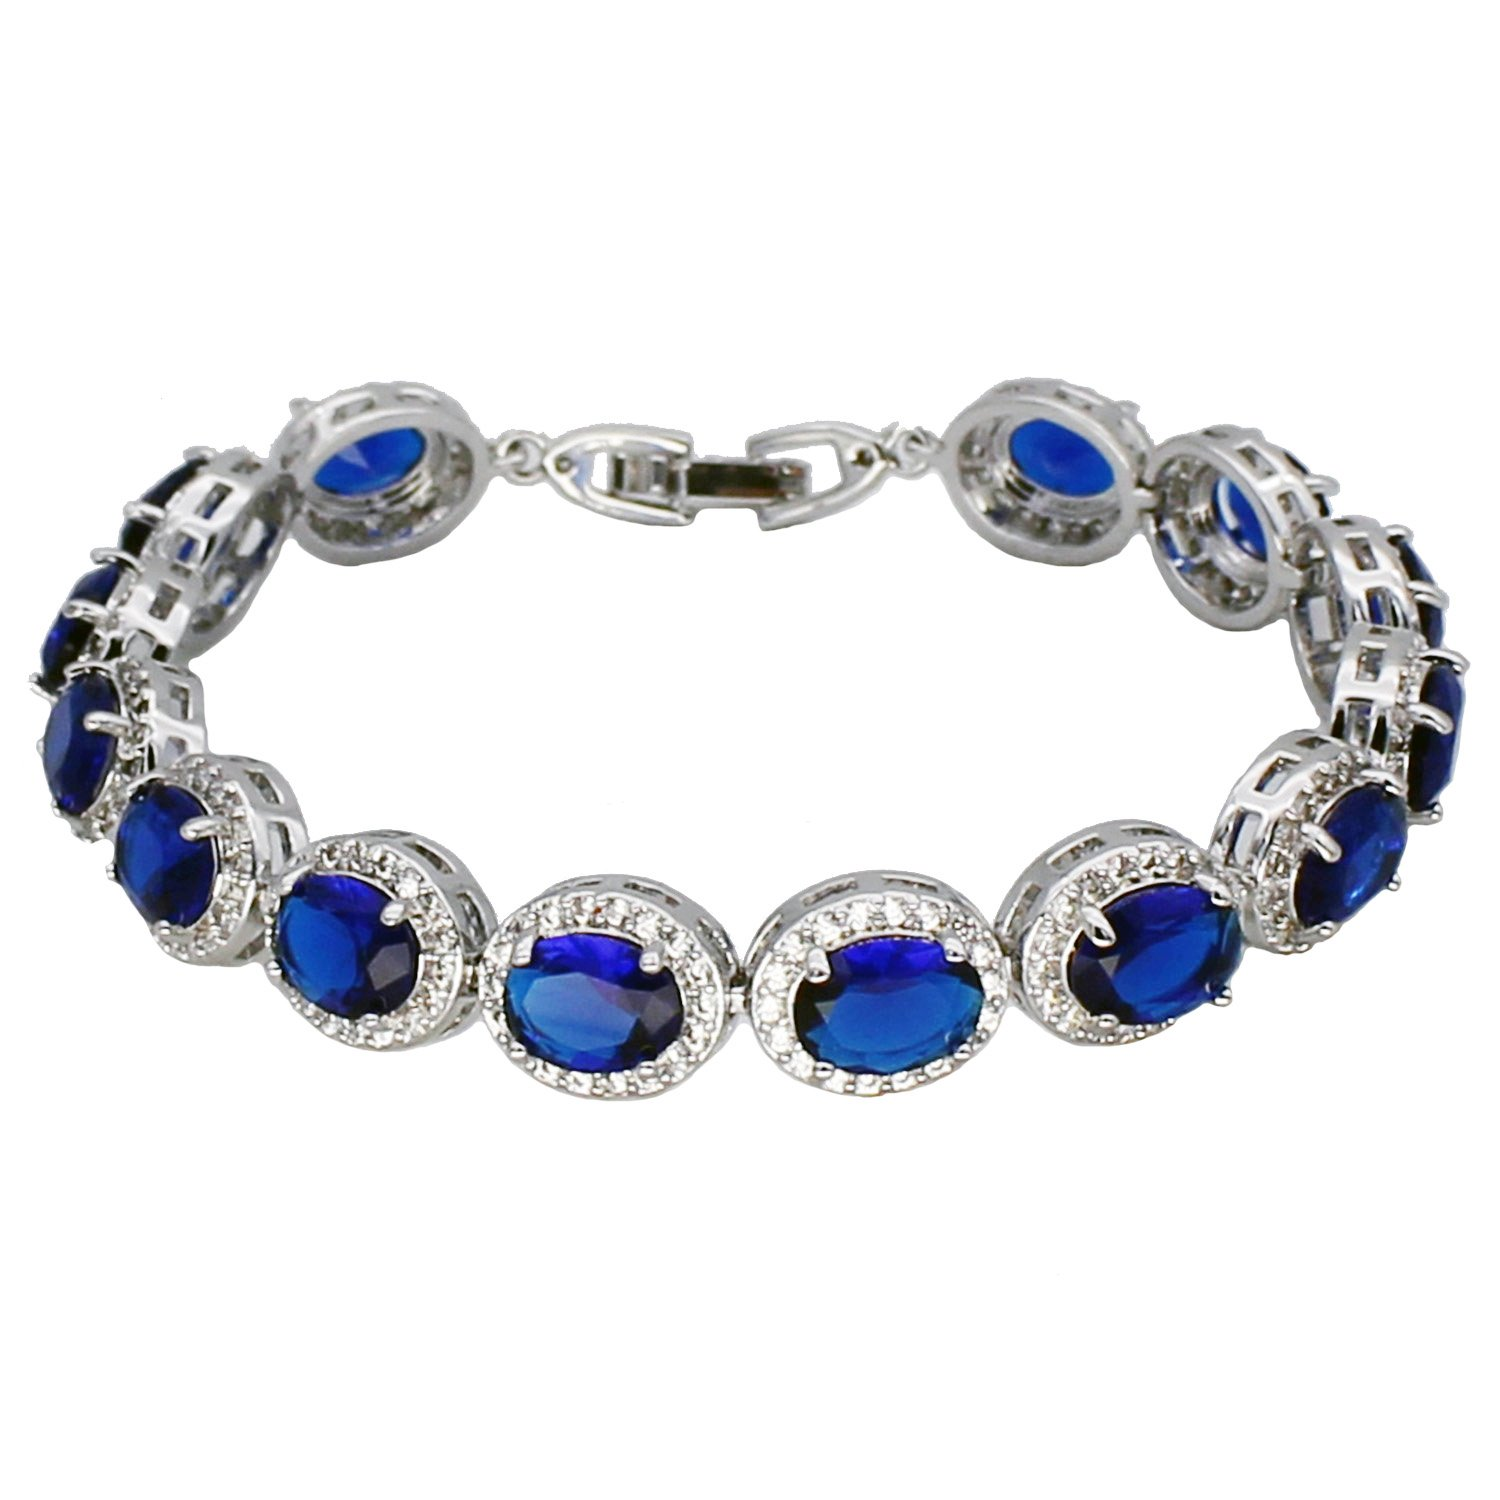 Oval Ladies Tennis Bracelet Sapphire Ruby Emerald White Topaz Silver 7 inch (Sapphire)